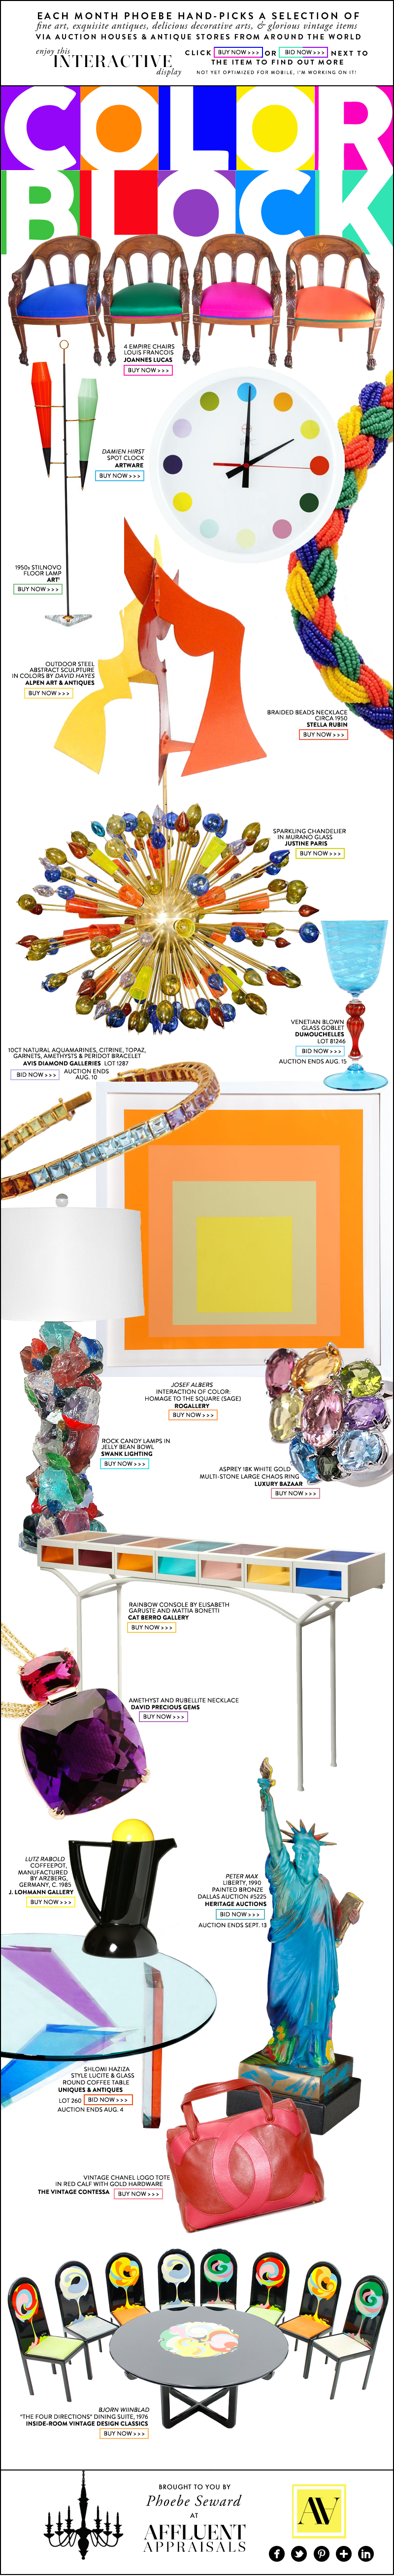 Fine Art & Antiques Trending for August 2015: Color Block | Brought to you by Affluent Appraisals & Phoebe Seward | affluentappraisals.com/blog | #art #antiques #products #editorial #design #newsletter | featuring items from: Damien Hirst, Stilnovo, Murano, DuMouchelles, Josef Albers, Asprey, Heritage Auctions, RoGallery, Elisabeth Garuste, Mattia Bonetti, Peter Max, Lutz Rabold, Chanel, & Bjorn Wiinbald